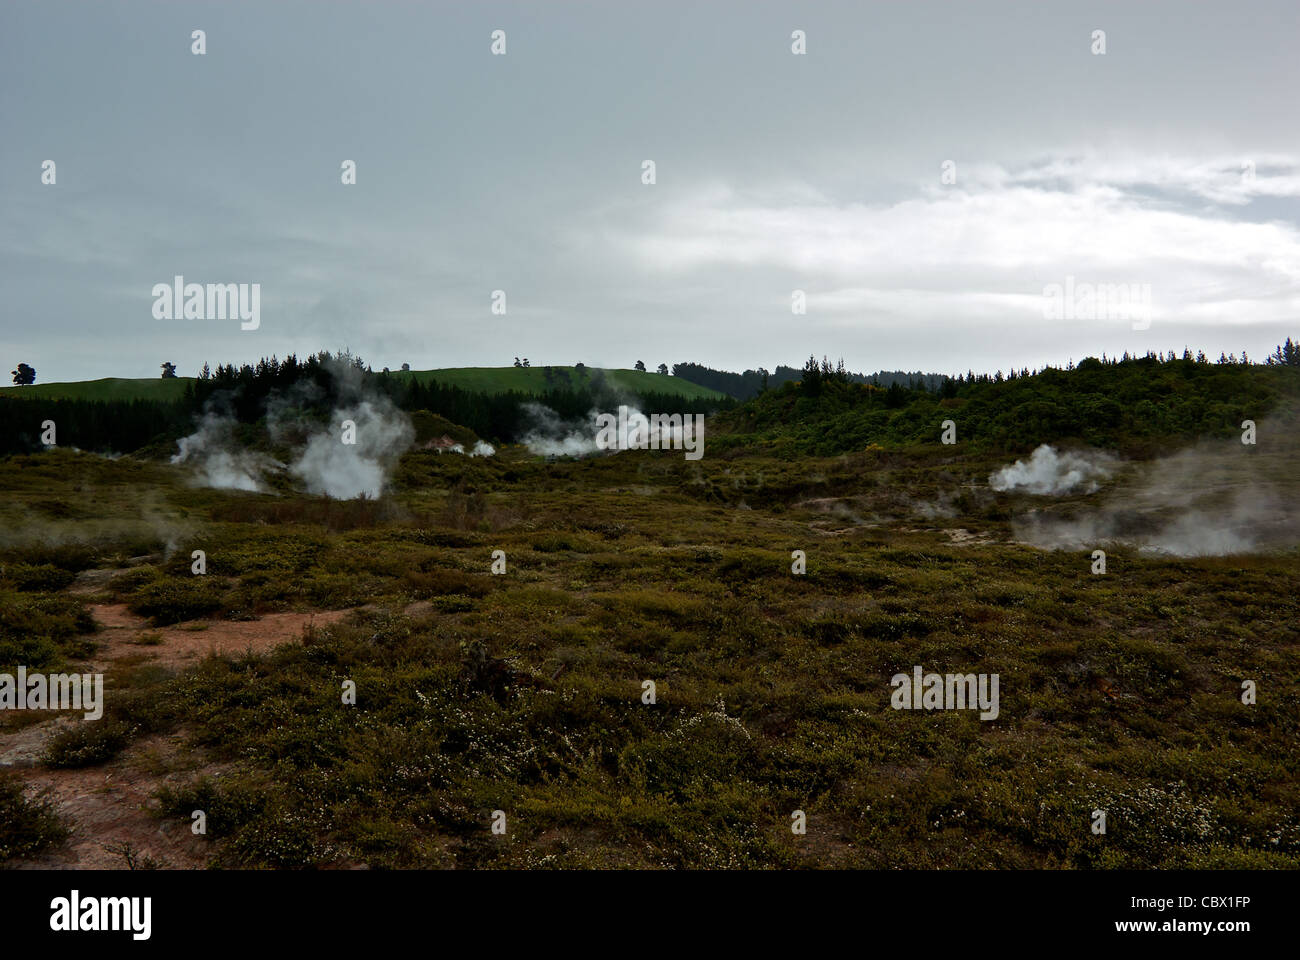 Craters of the Moon geothermal steam vents Lake Taupo New Zealand - Stock Image